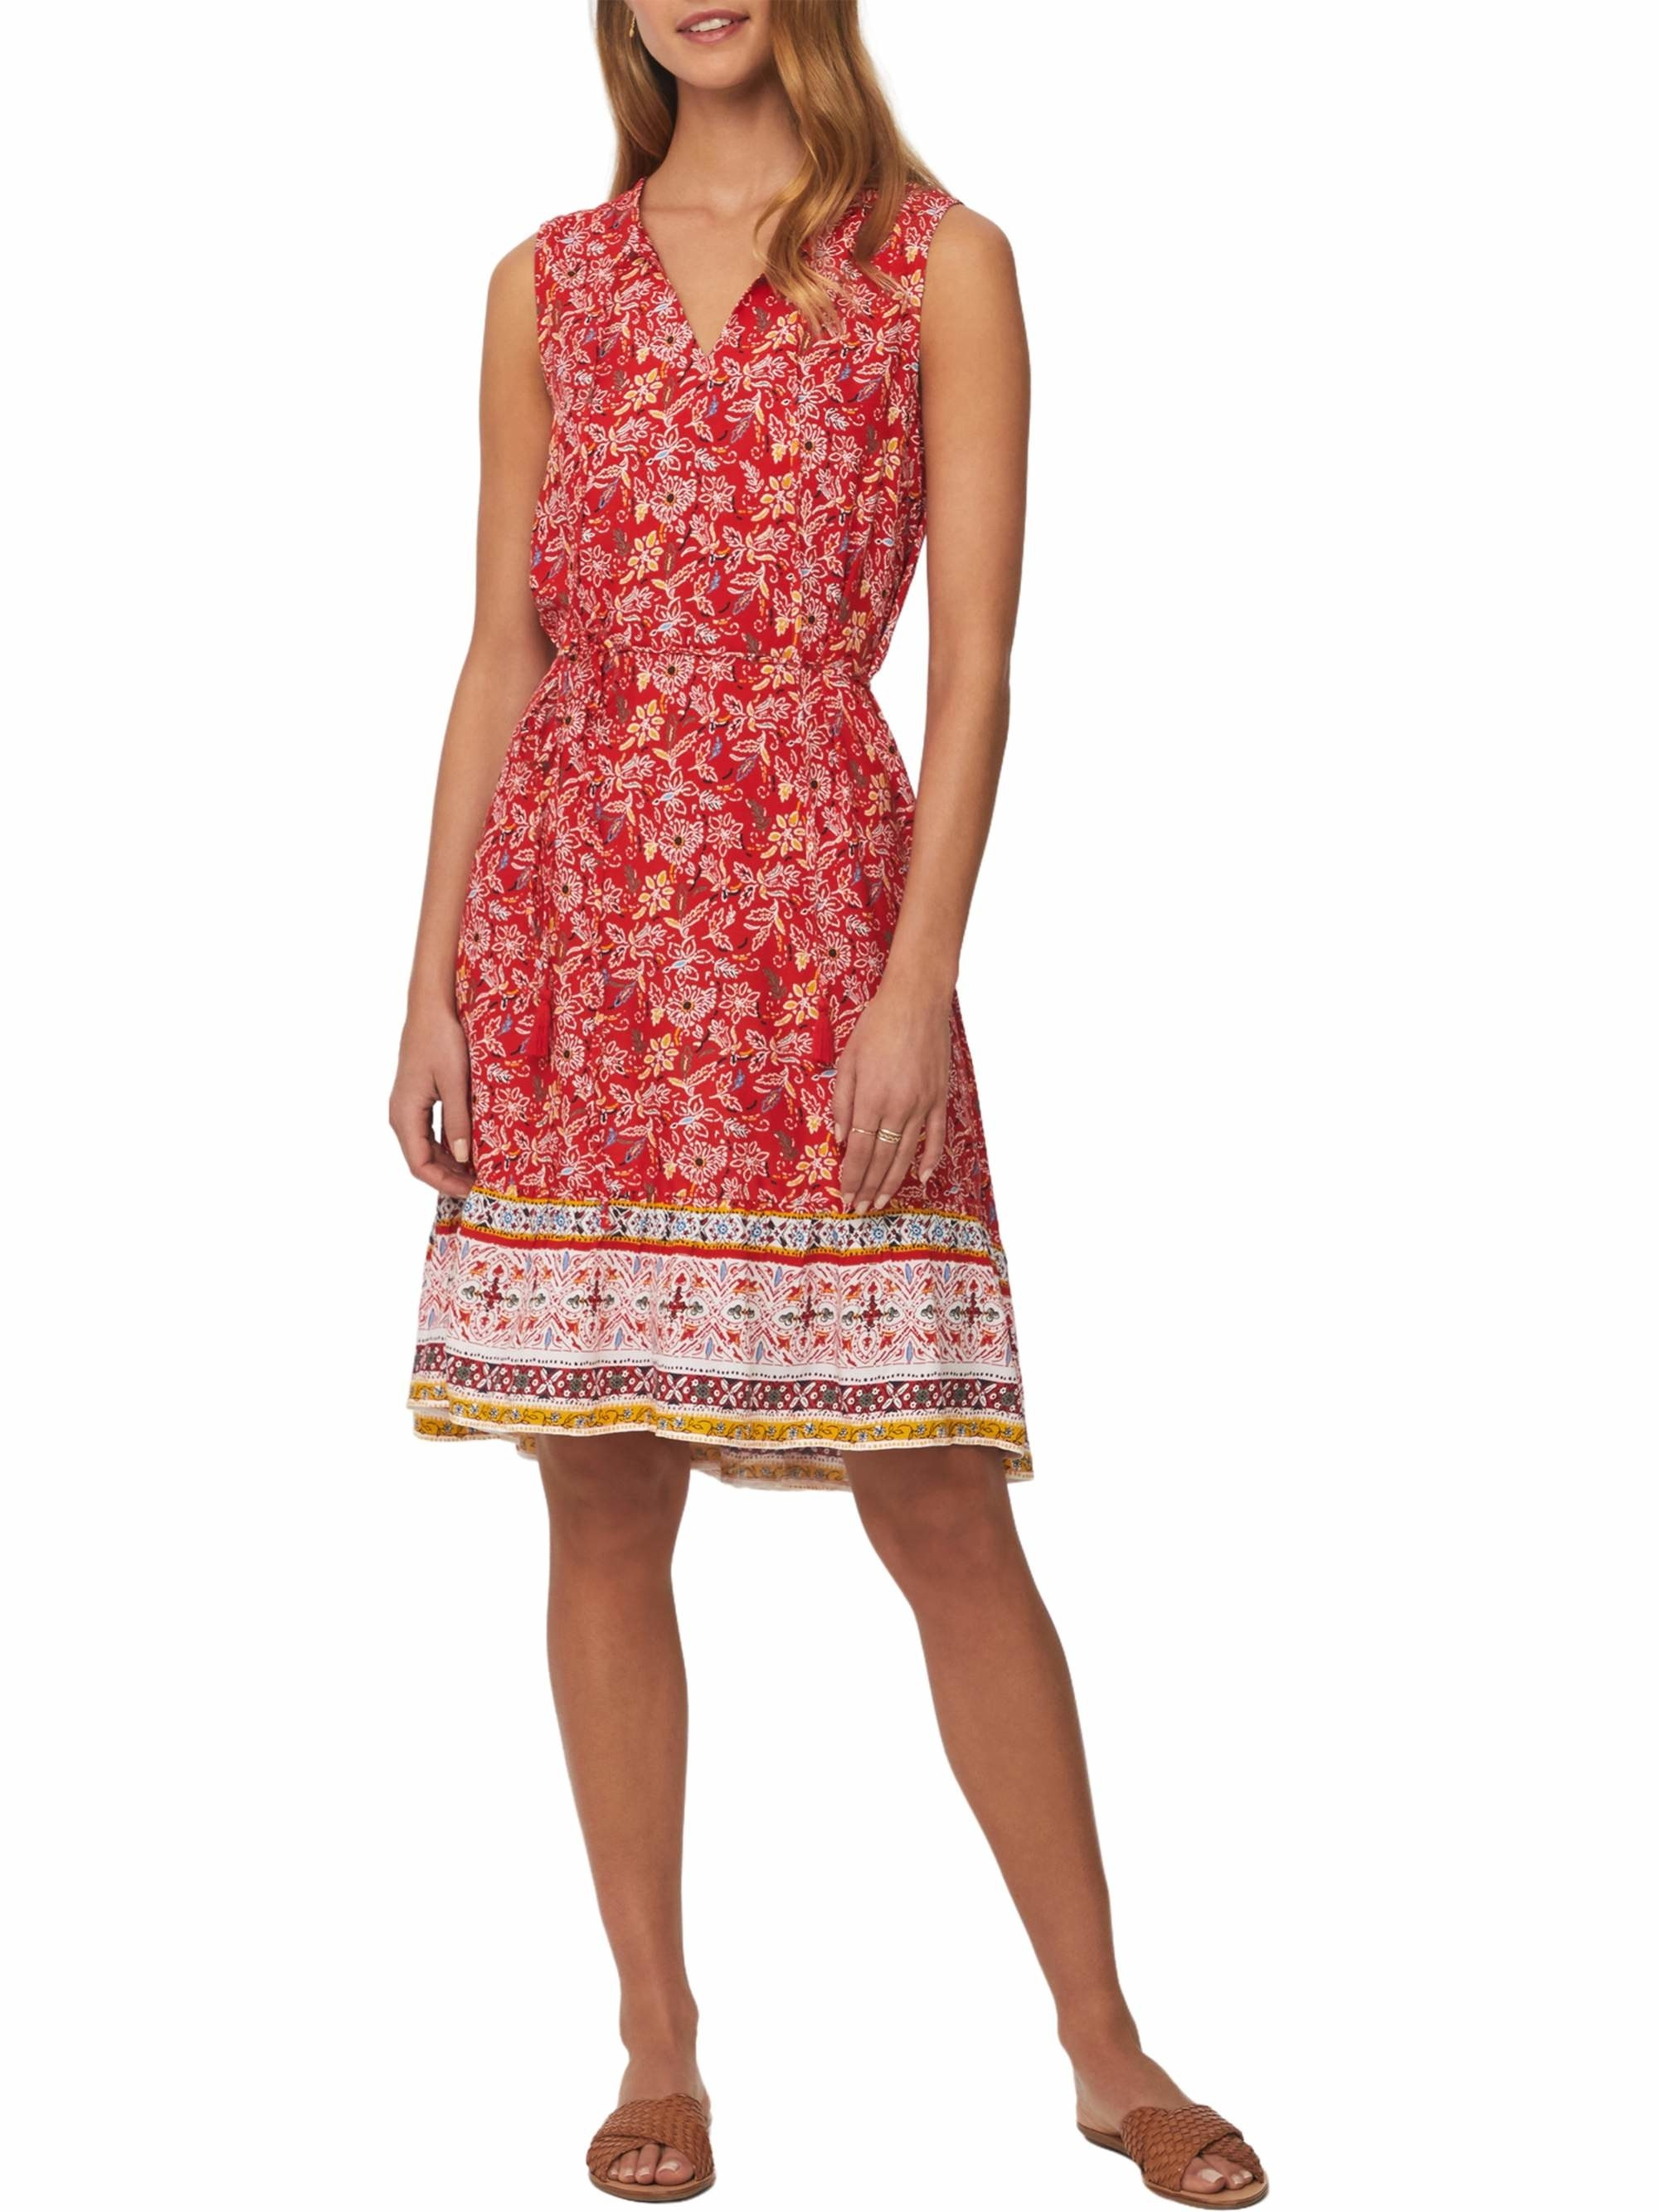 model in a sleevless paisley print dress with a v-neck